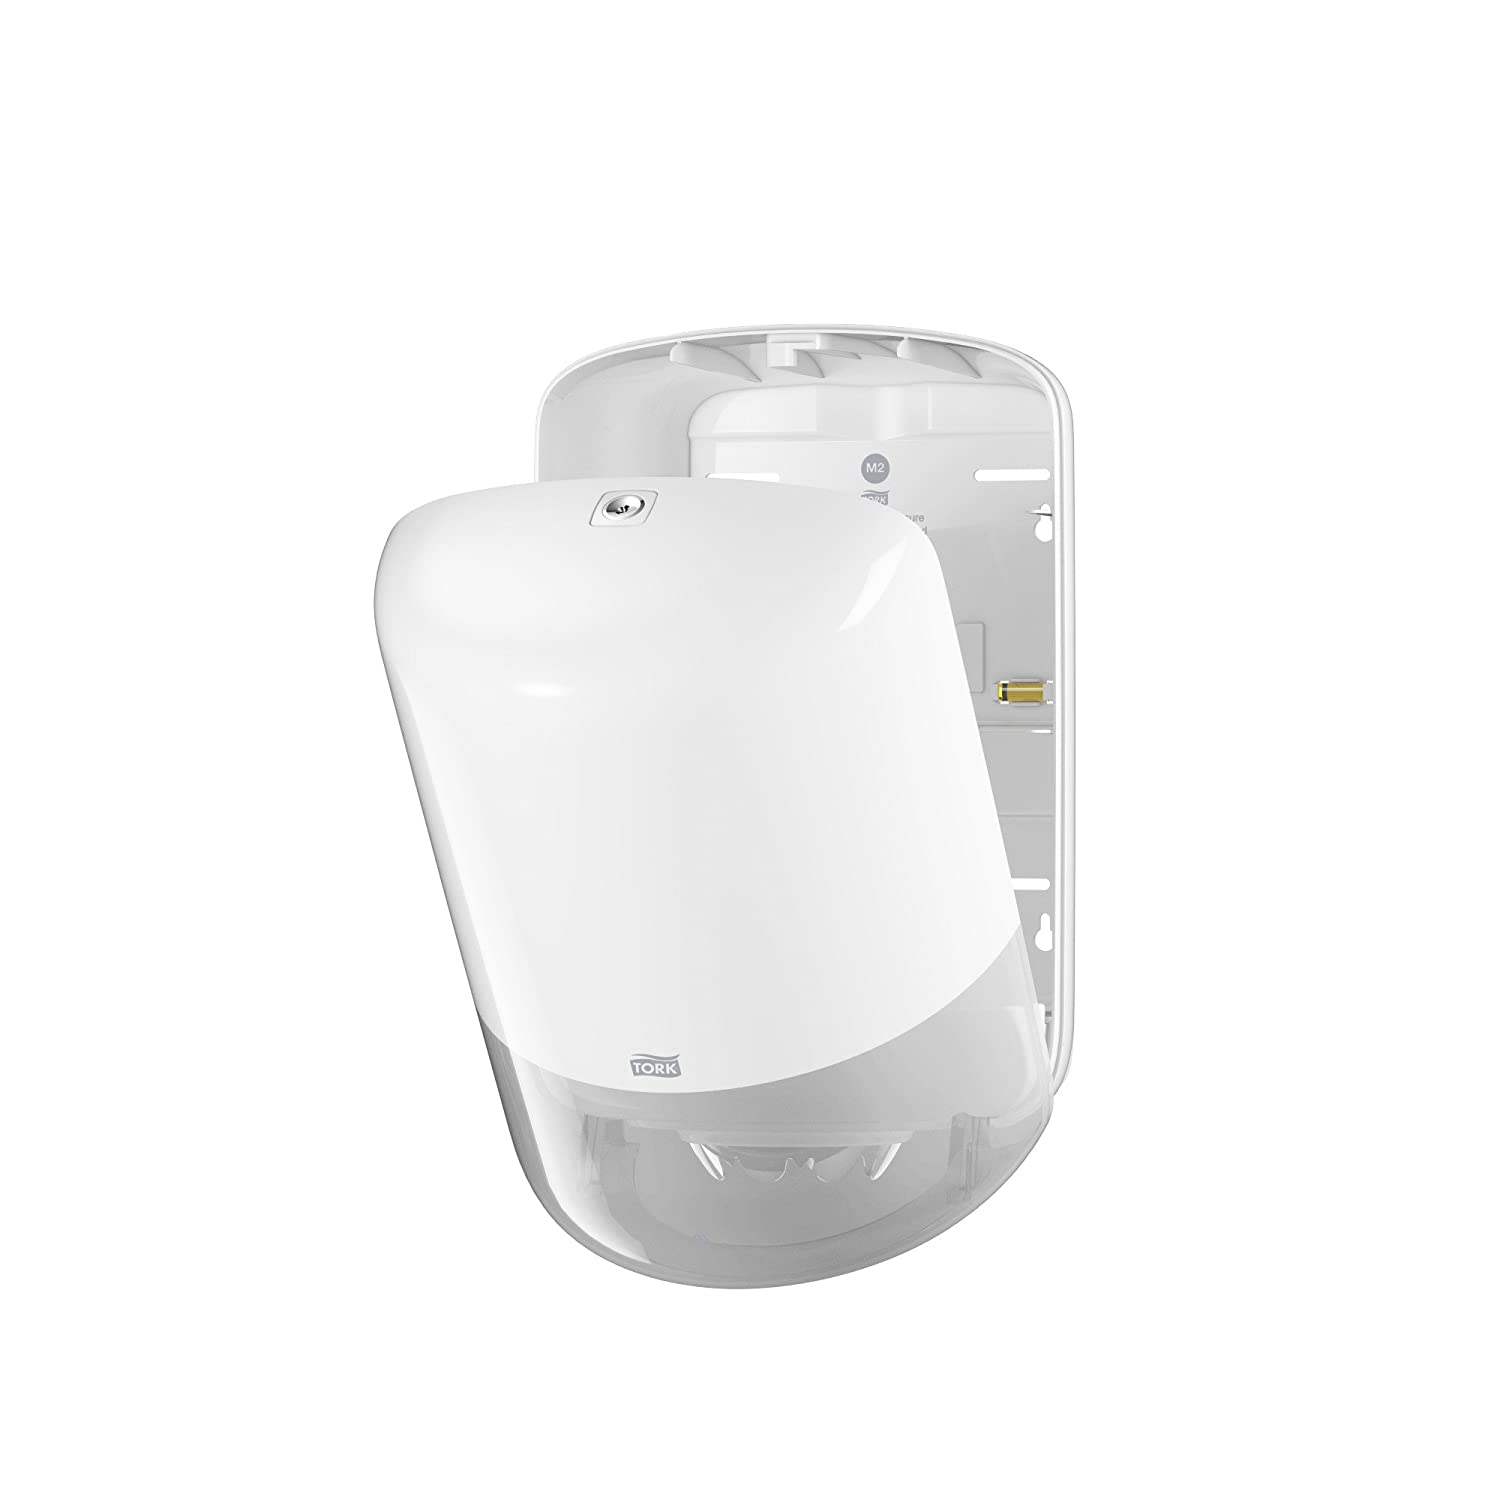 Tork M-Box M2 871787 - Dispensador, color blanco: Amazon.es: Industria, empresas y ciencia